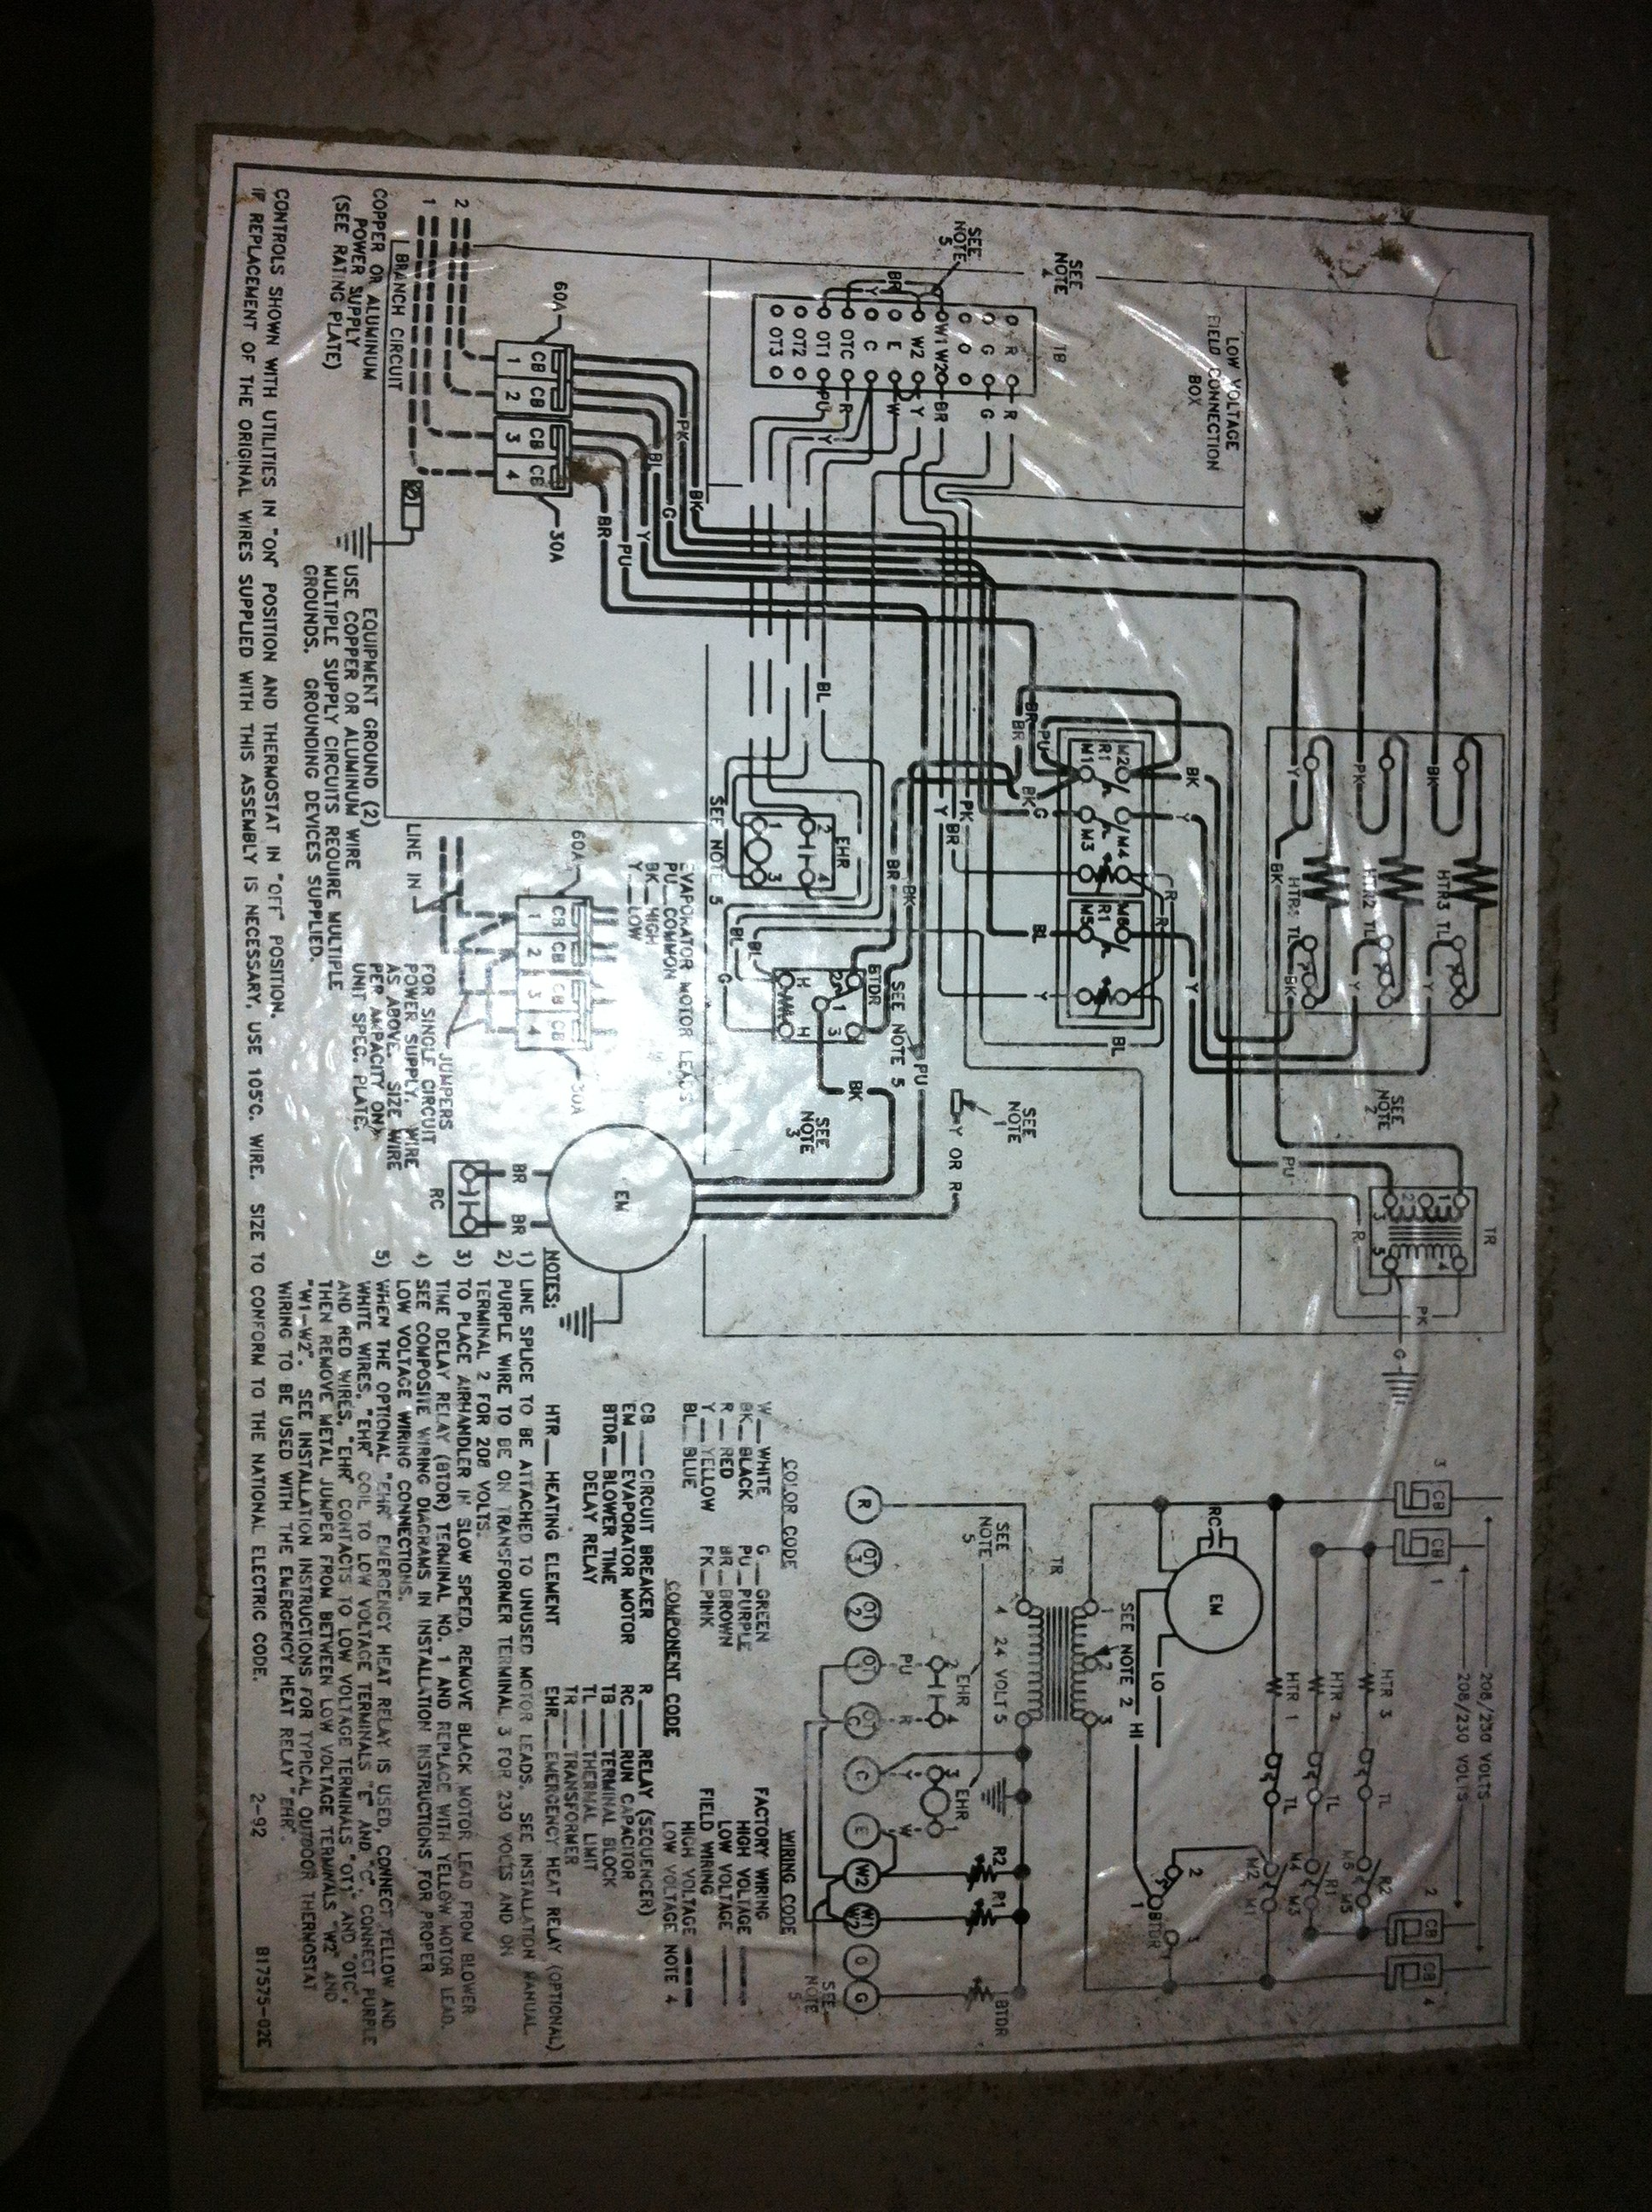 goodman electric heat wiring diagram apexi avcr boost controller my janitrol a36 15 air handler continues to run in